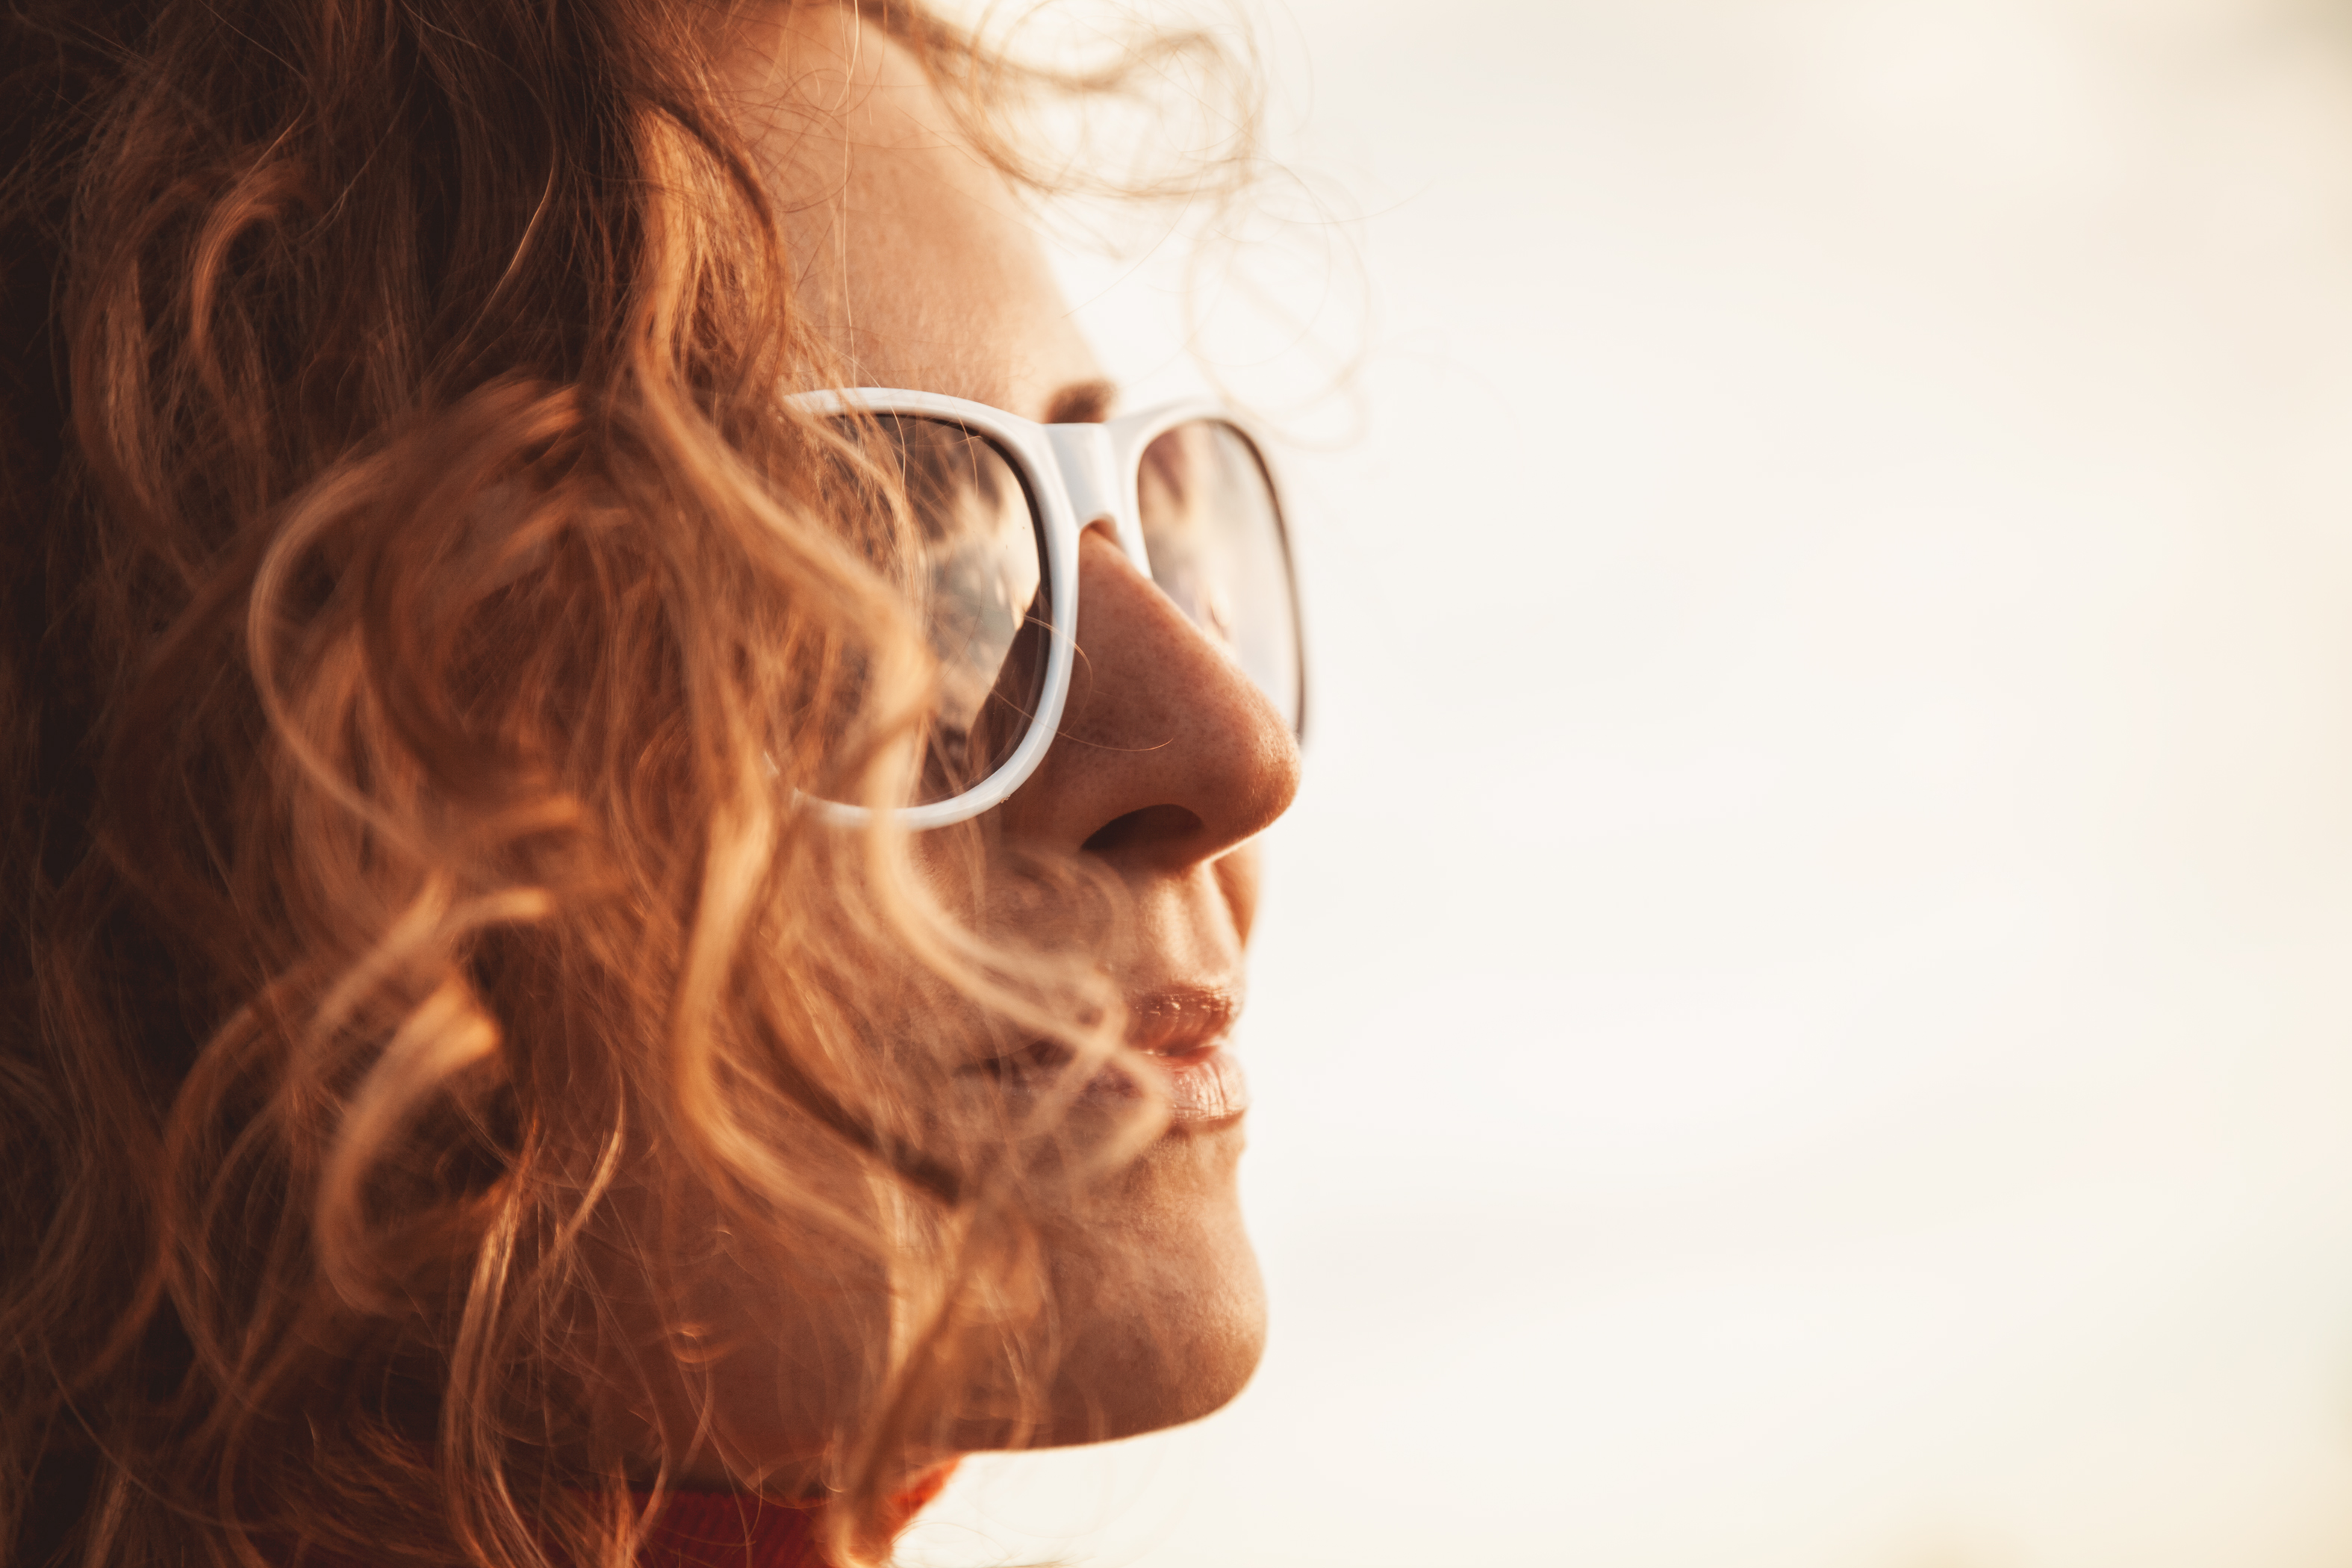 white sunglasses PA5VEZP - Is Sunlight Good For Your Eyes? The Science Says No